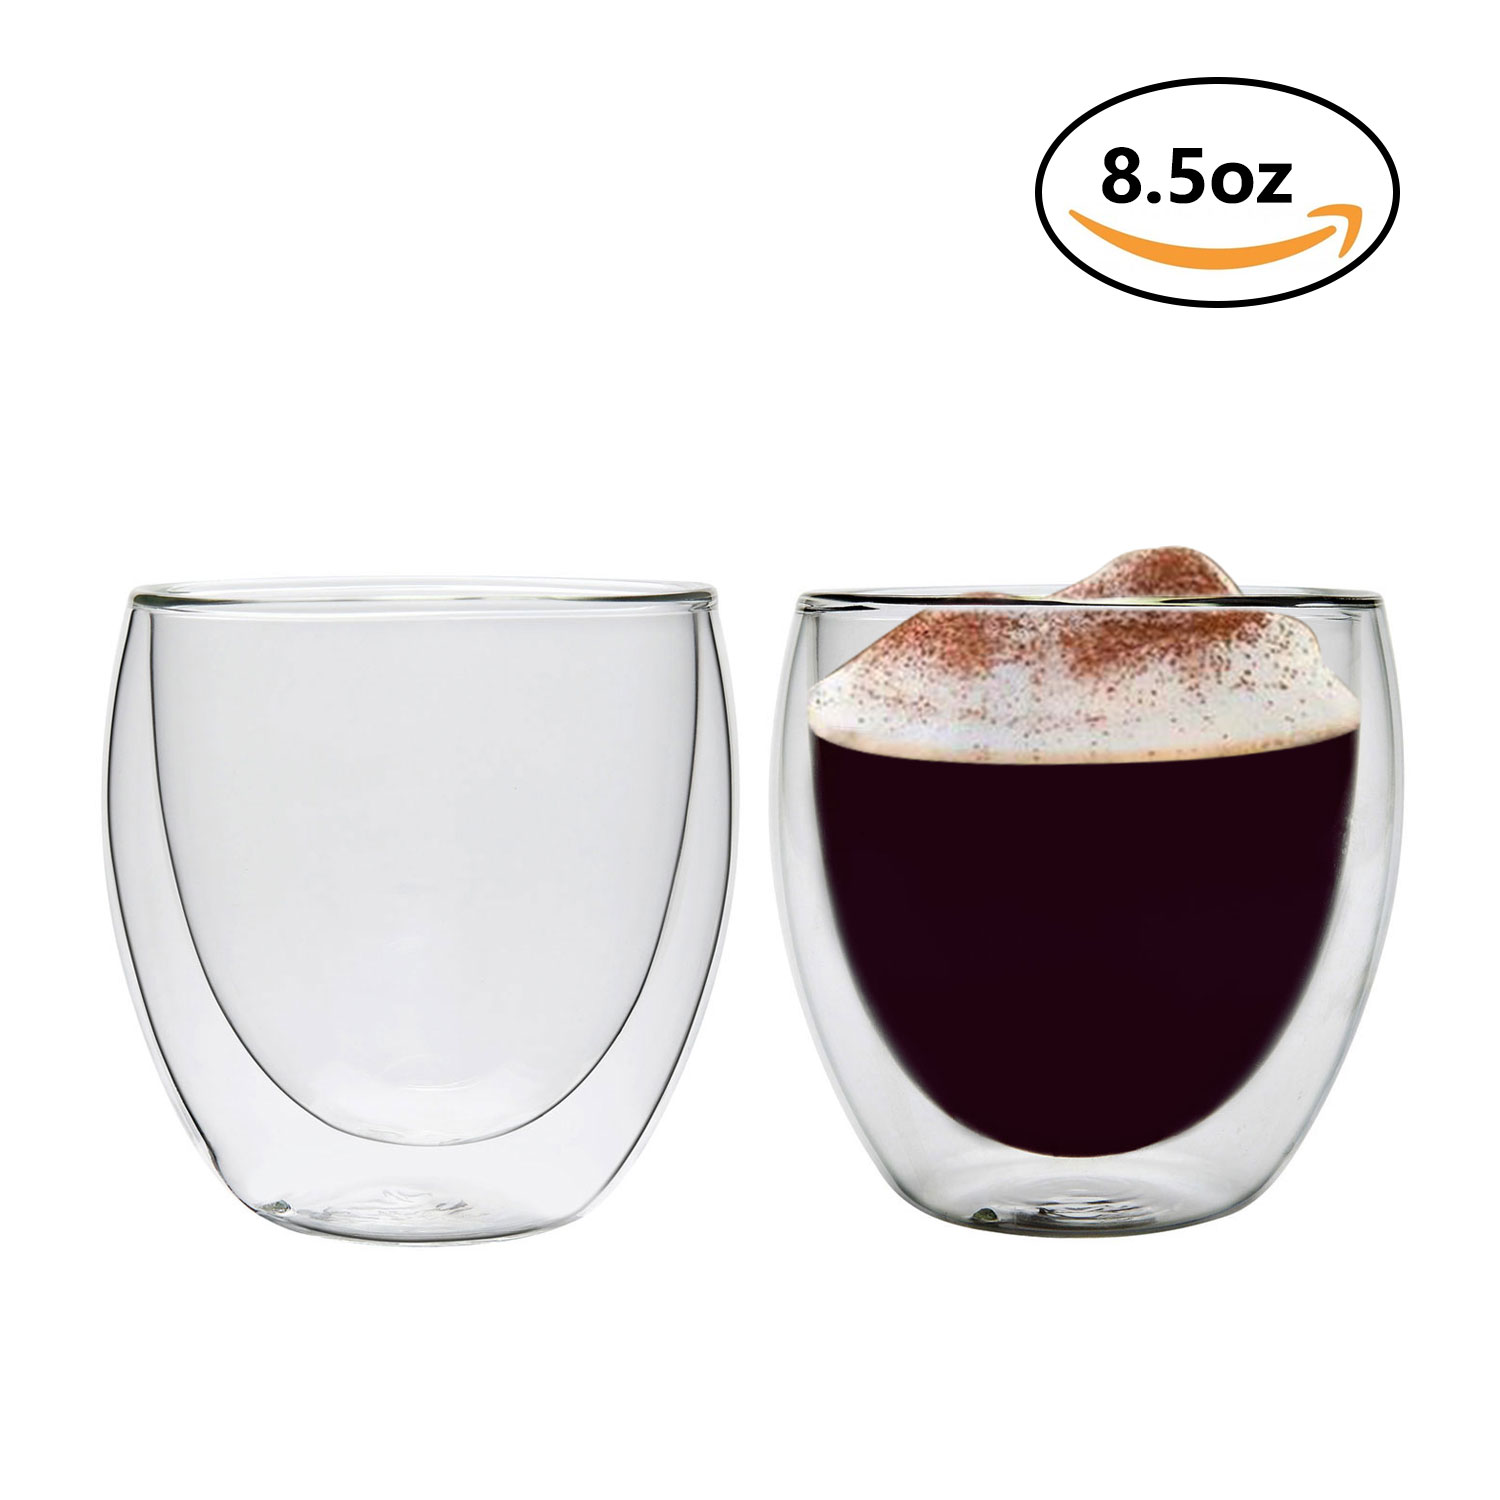 50-80-250-350ml-Double-Wall-Layer-Thermal-Glass-Cups-Mug-for-Coffee-Tea-Espresso